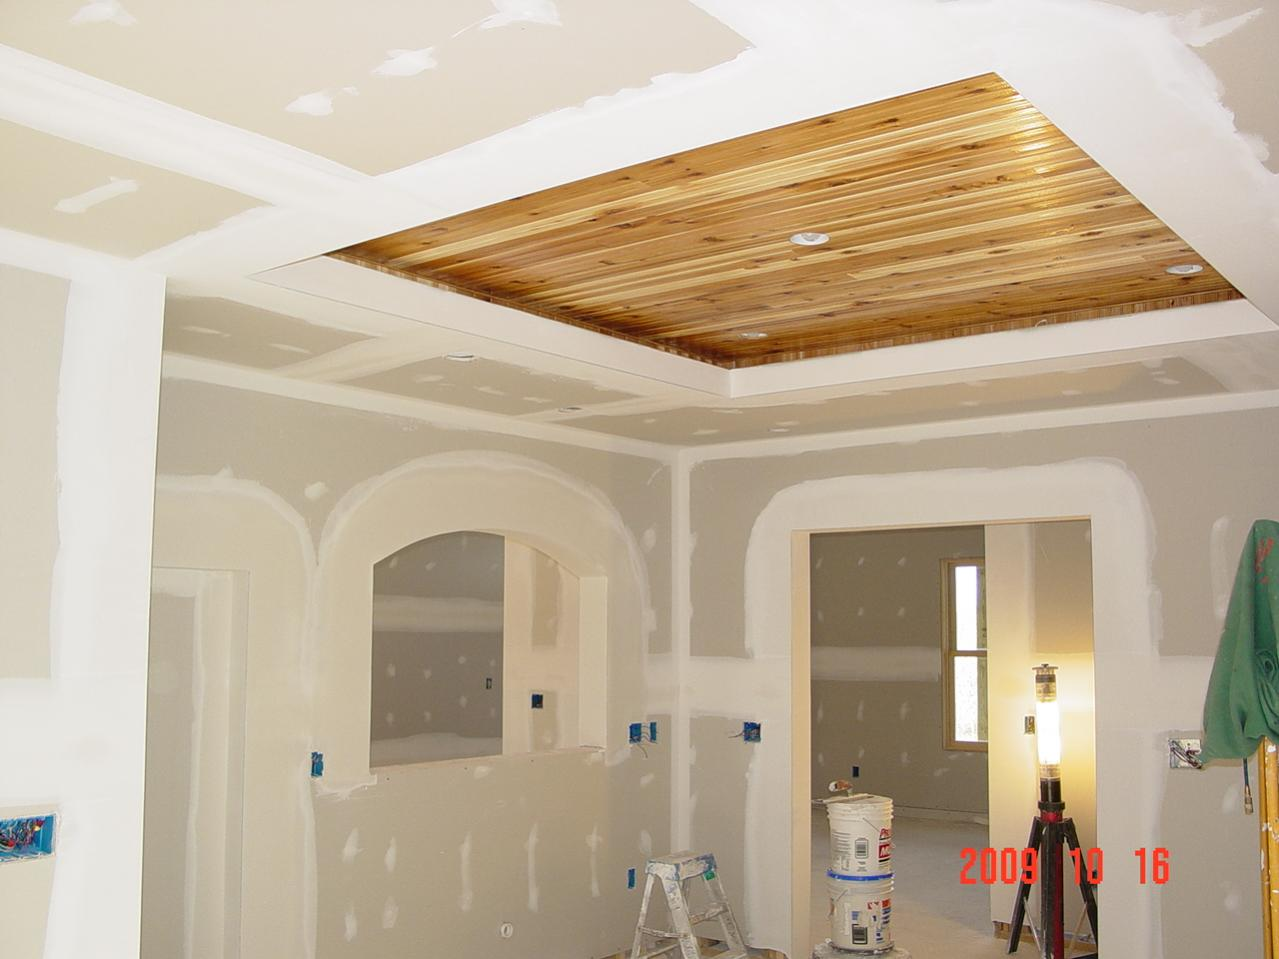 A Little Drywall Art - Page 3 - Drywall Picture Post